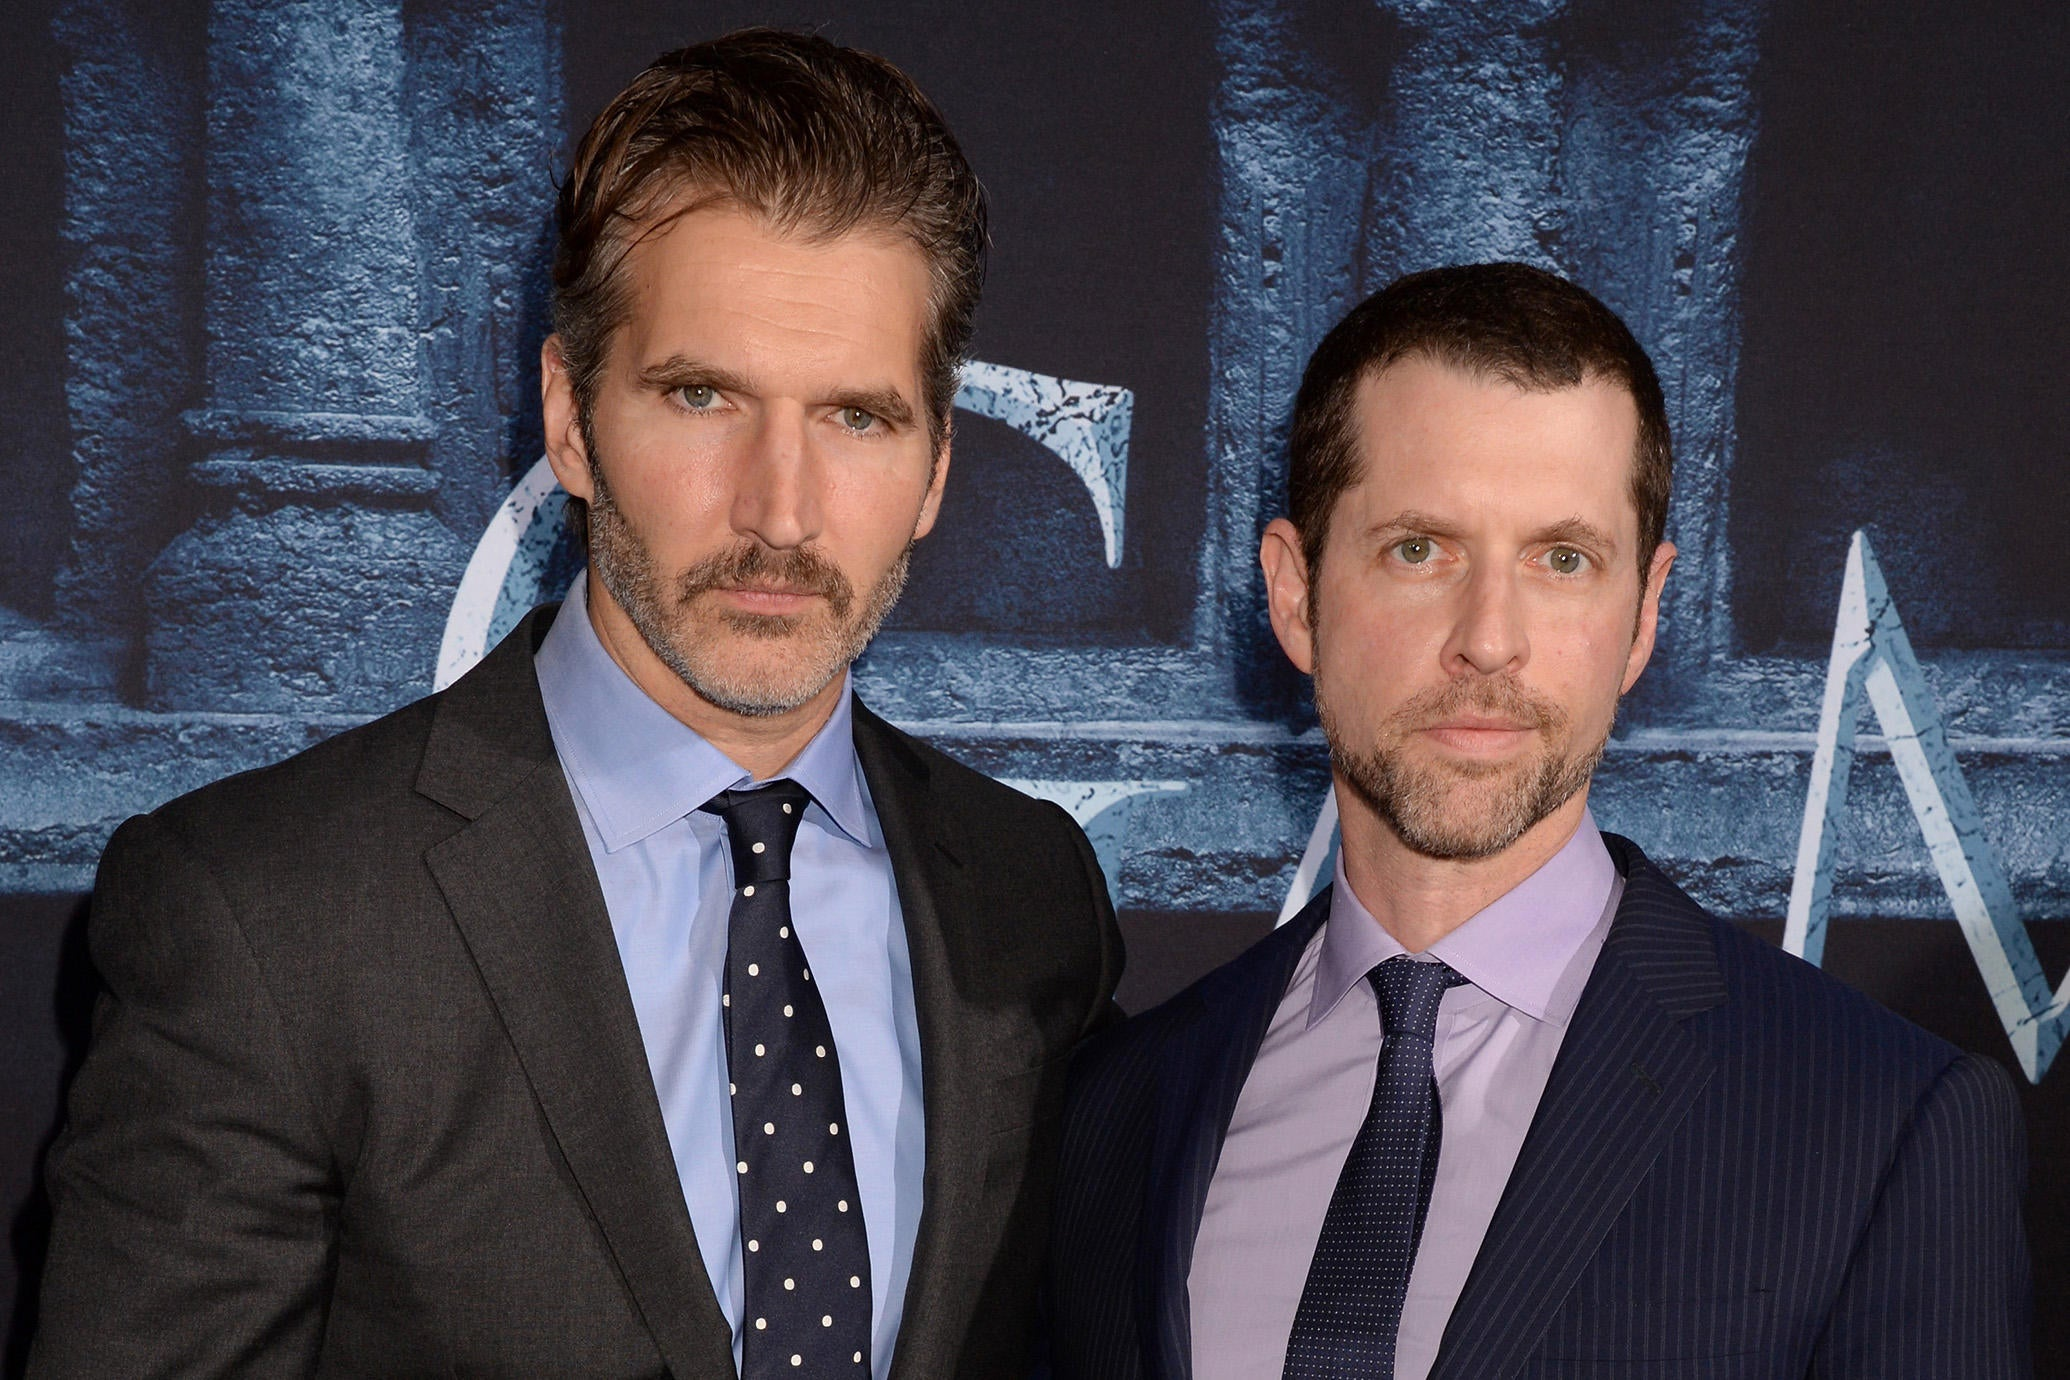 Daniel Brett Weiss and David Benioff Game Of Thrones Writers and directors